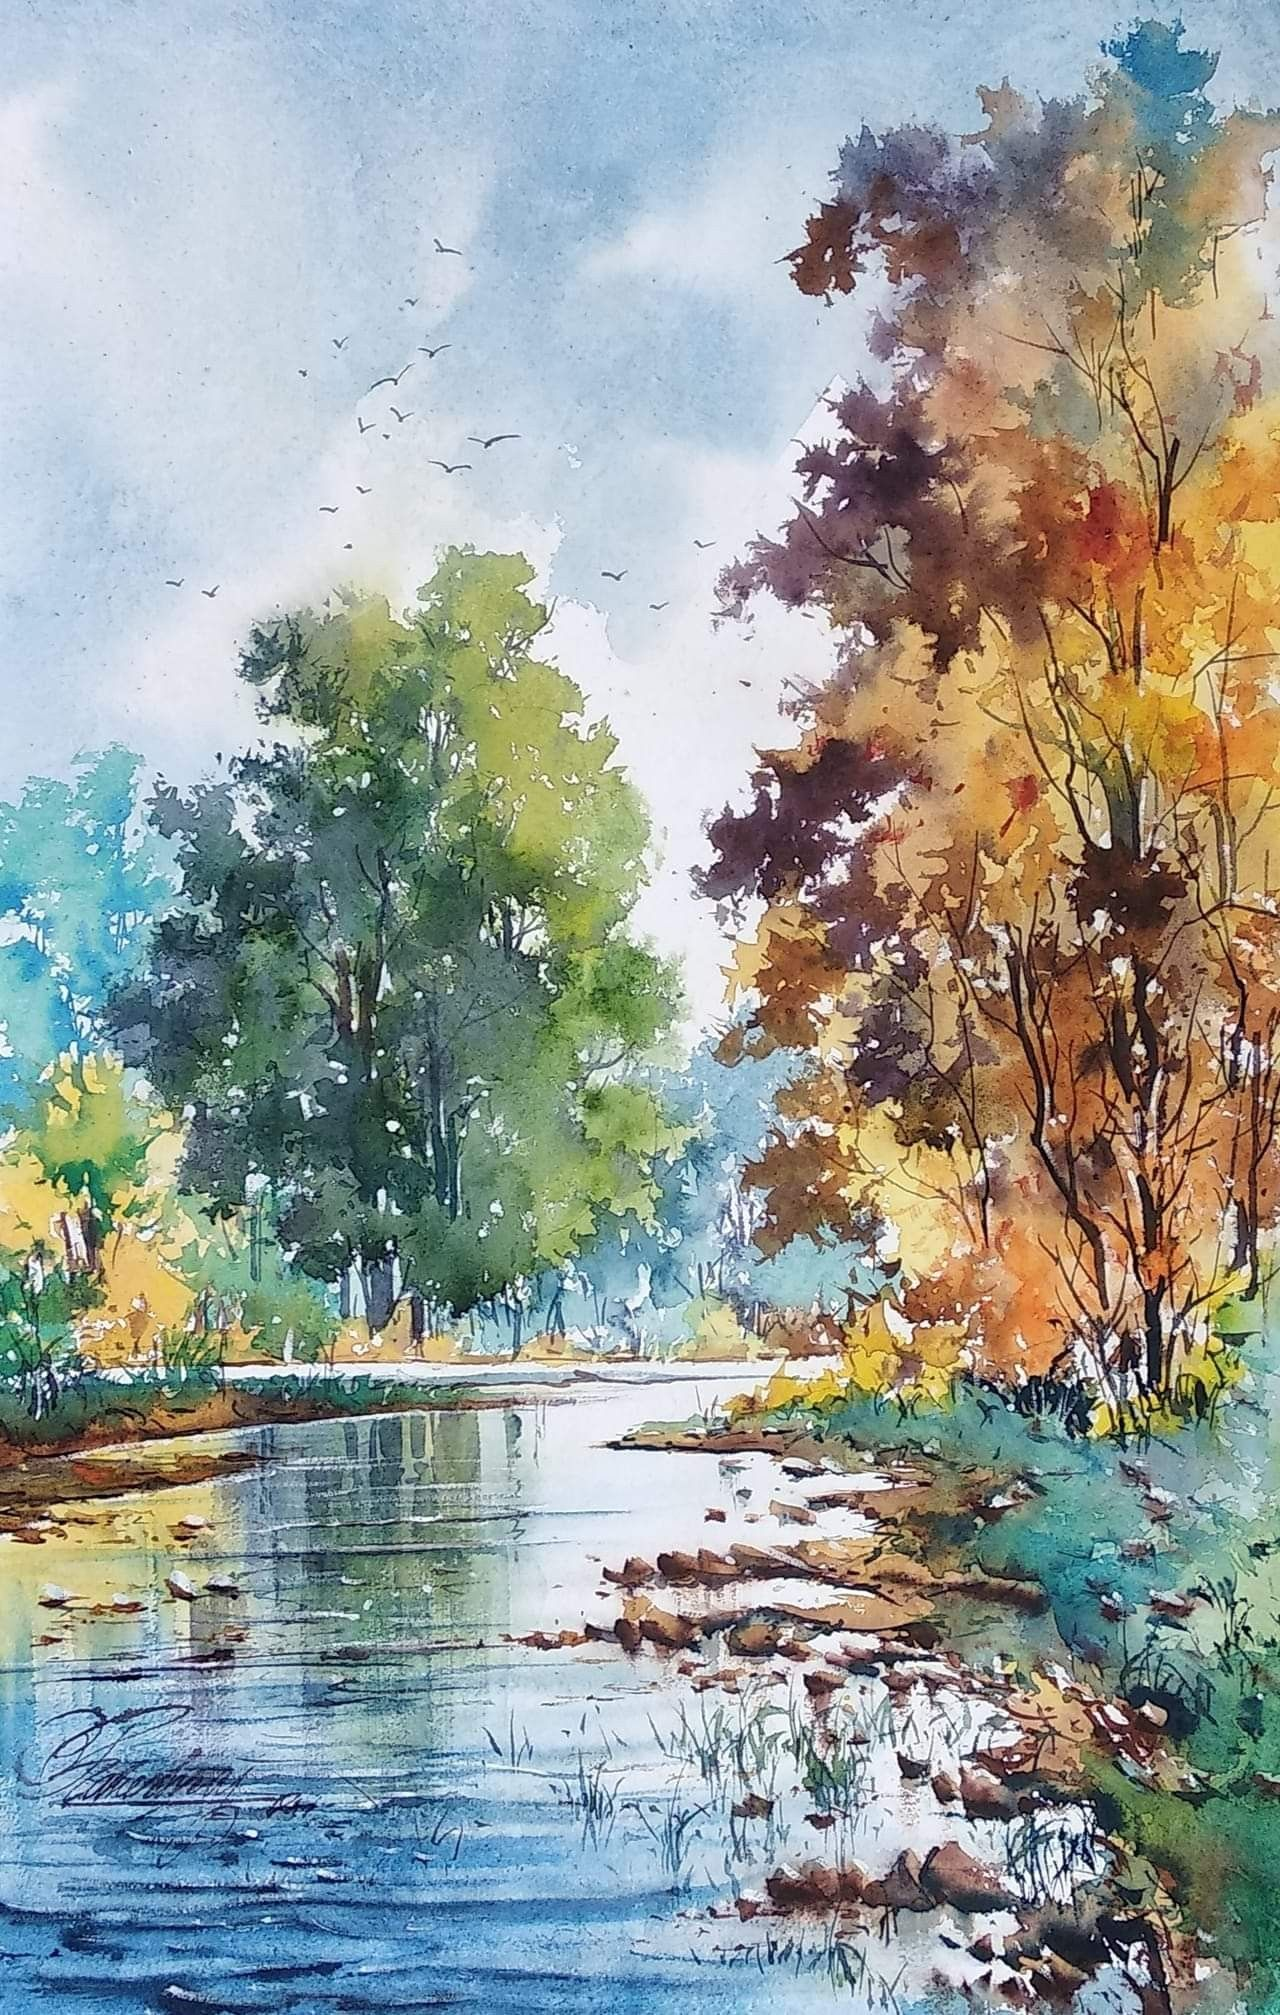 Water Color Painting Saved By Jayant Deshpande In Painting